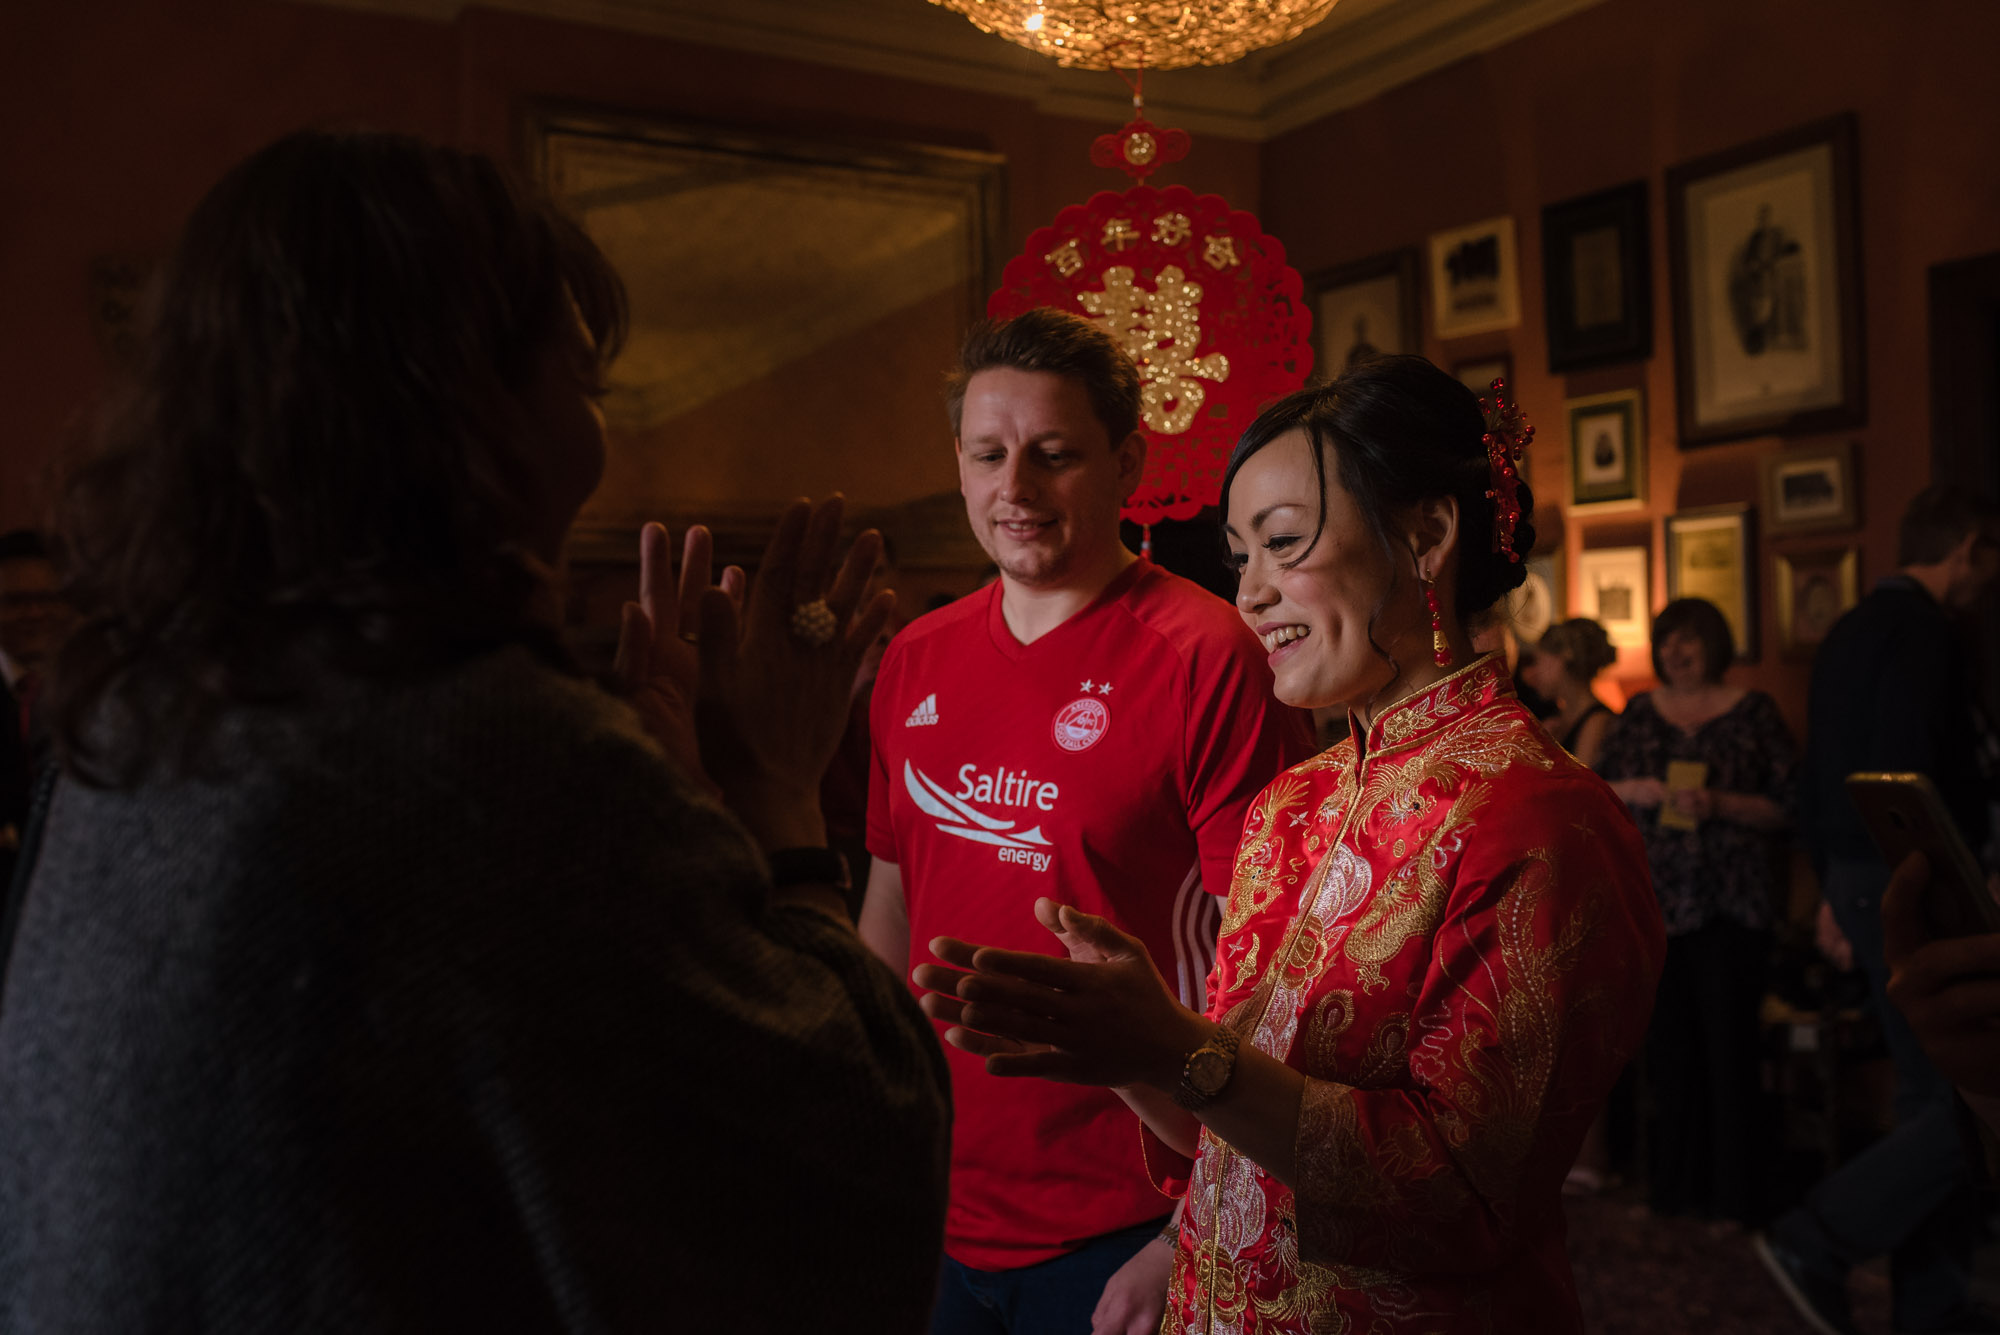 The bride and groom, both dressed in red, smile as they stand in front of their parents during their Chinese tea ceremony.